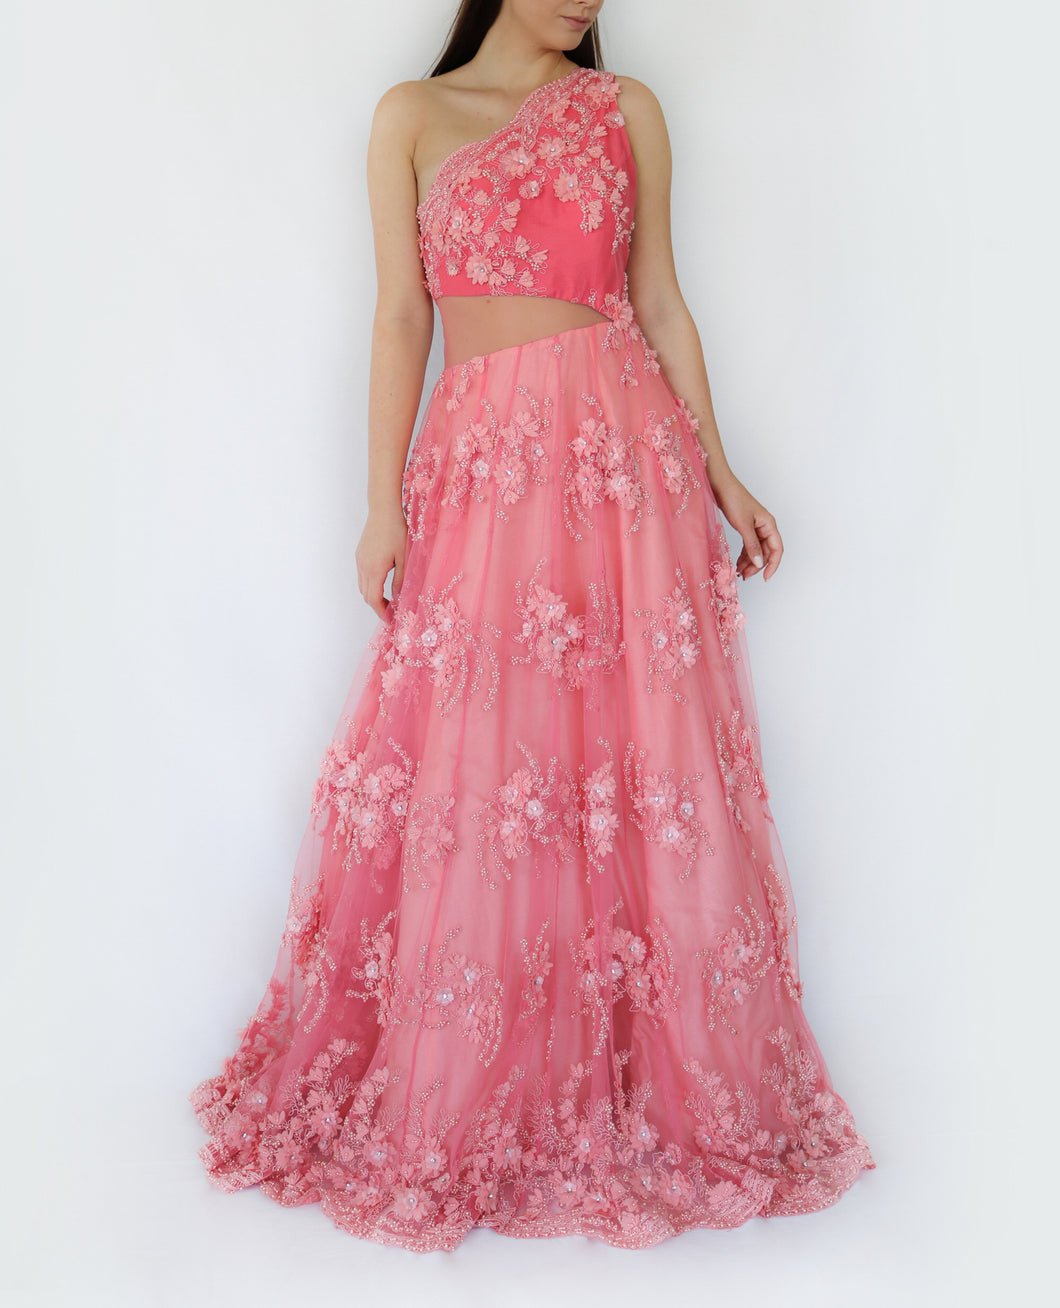 gown for wedding, elegant evening gown dress